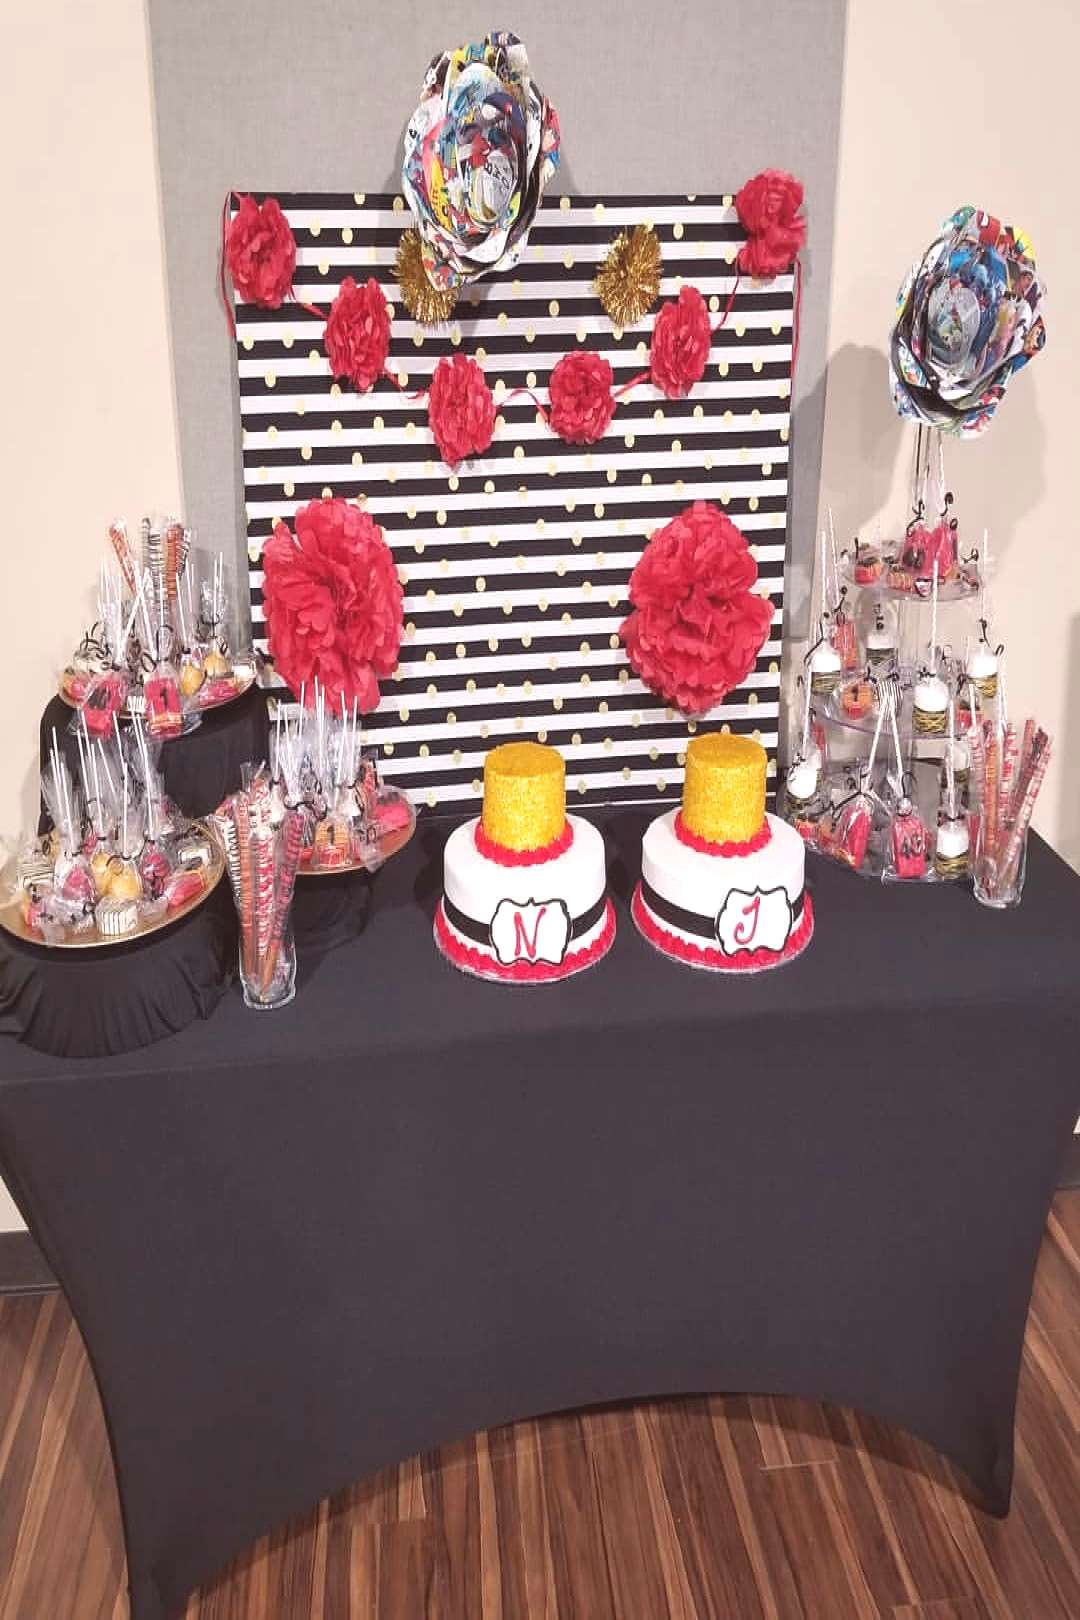 Our first fully designed dessert table for a double birthday part